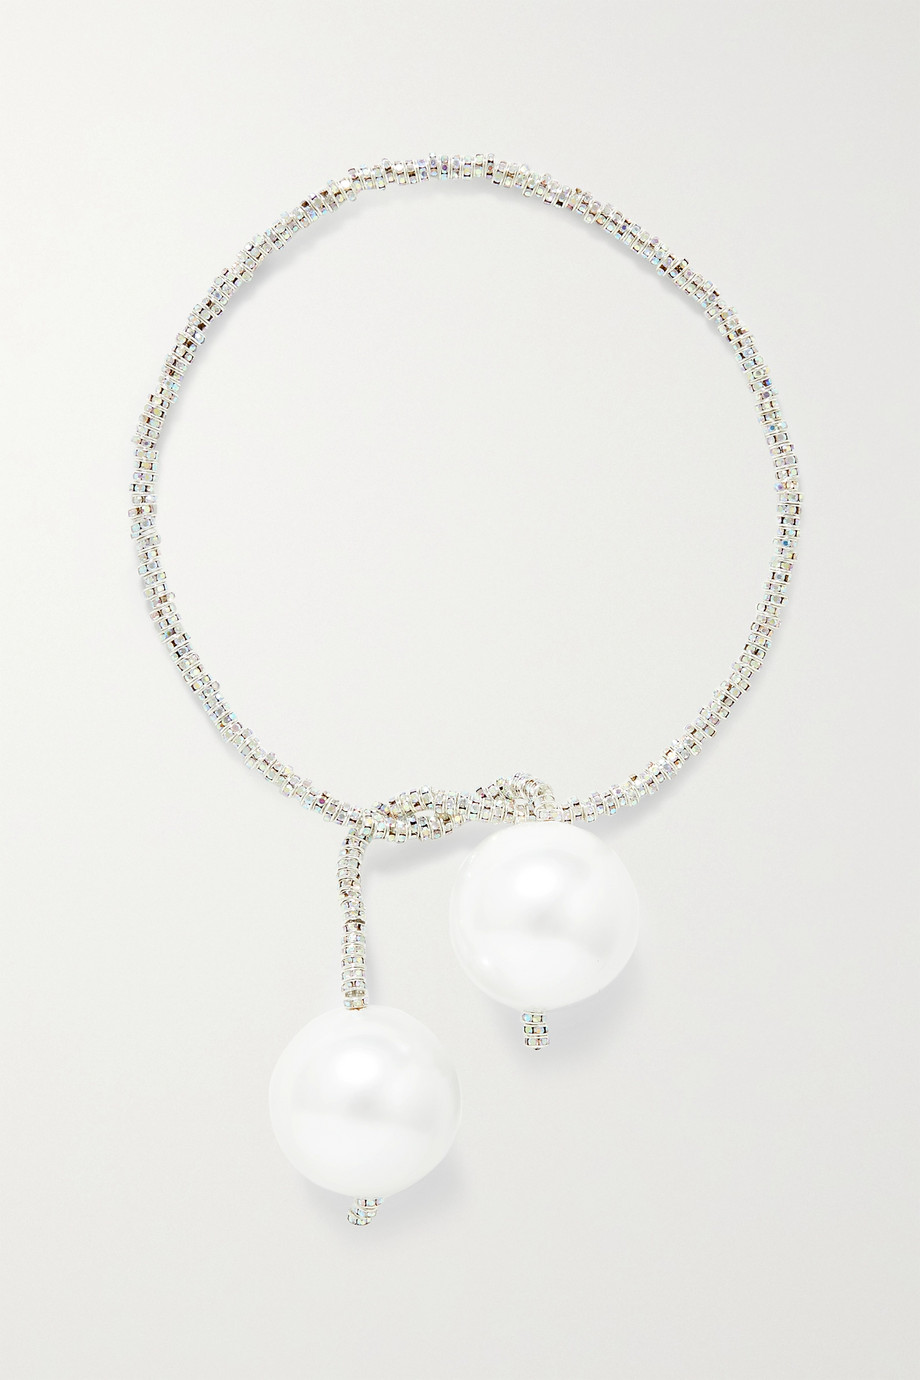 PEARL OCTOPUSS.Y Silver Snake convertible silver-plated, crystal and faux pearl necklace